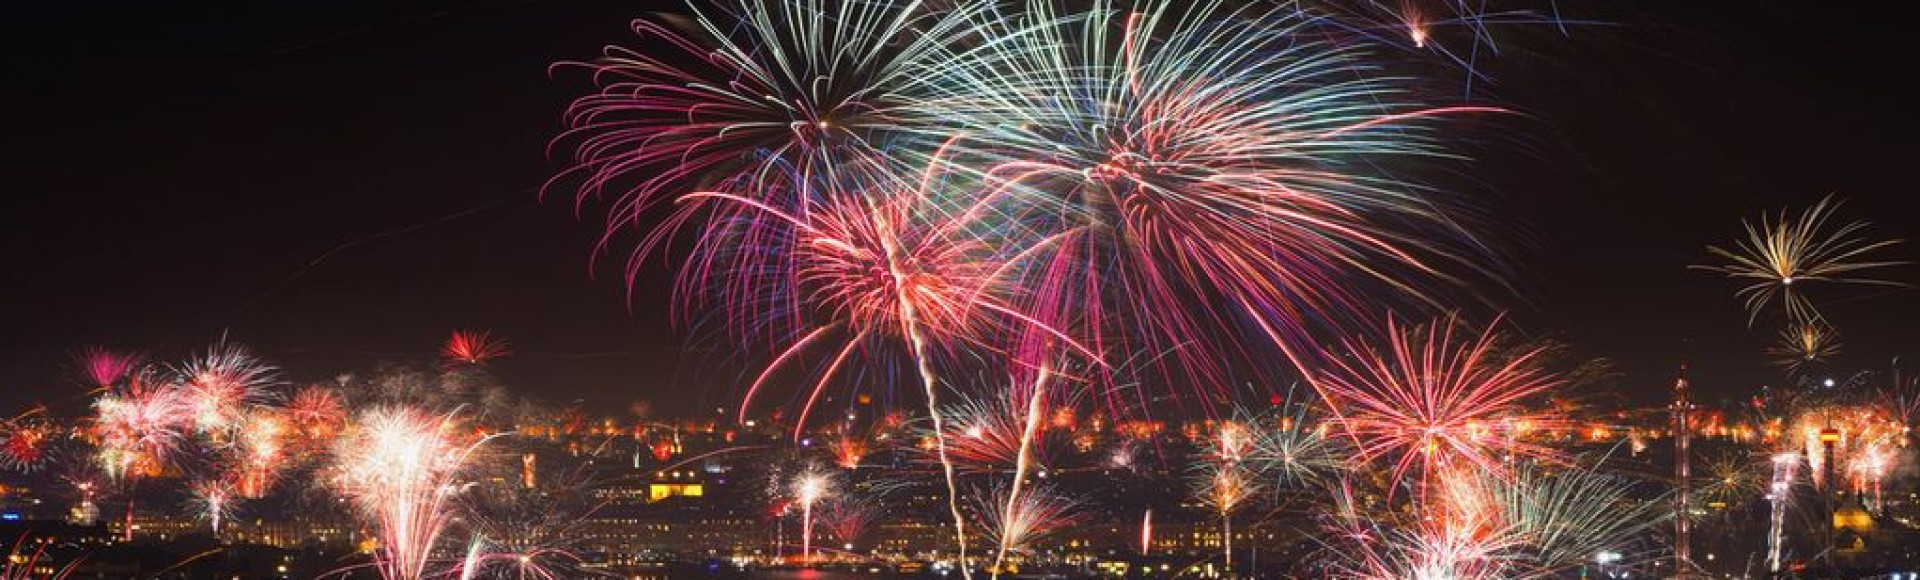 10 Places to Celebrate New Year's Eve in Stockholm